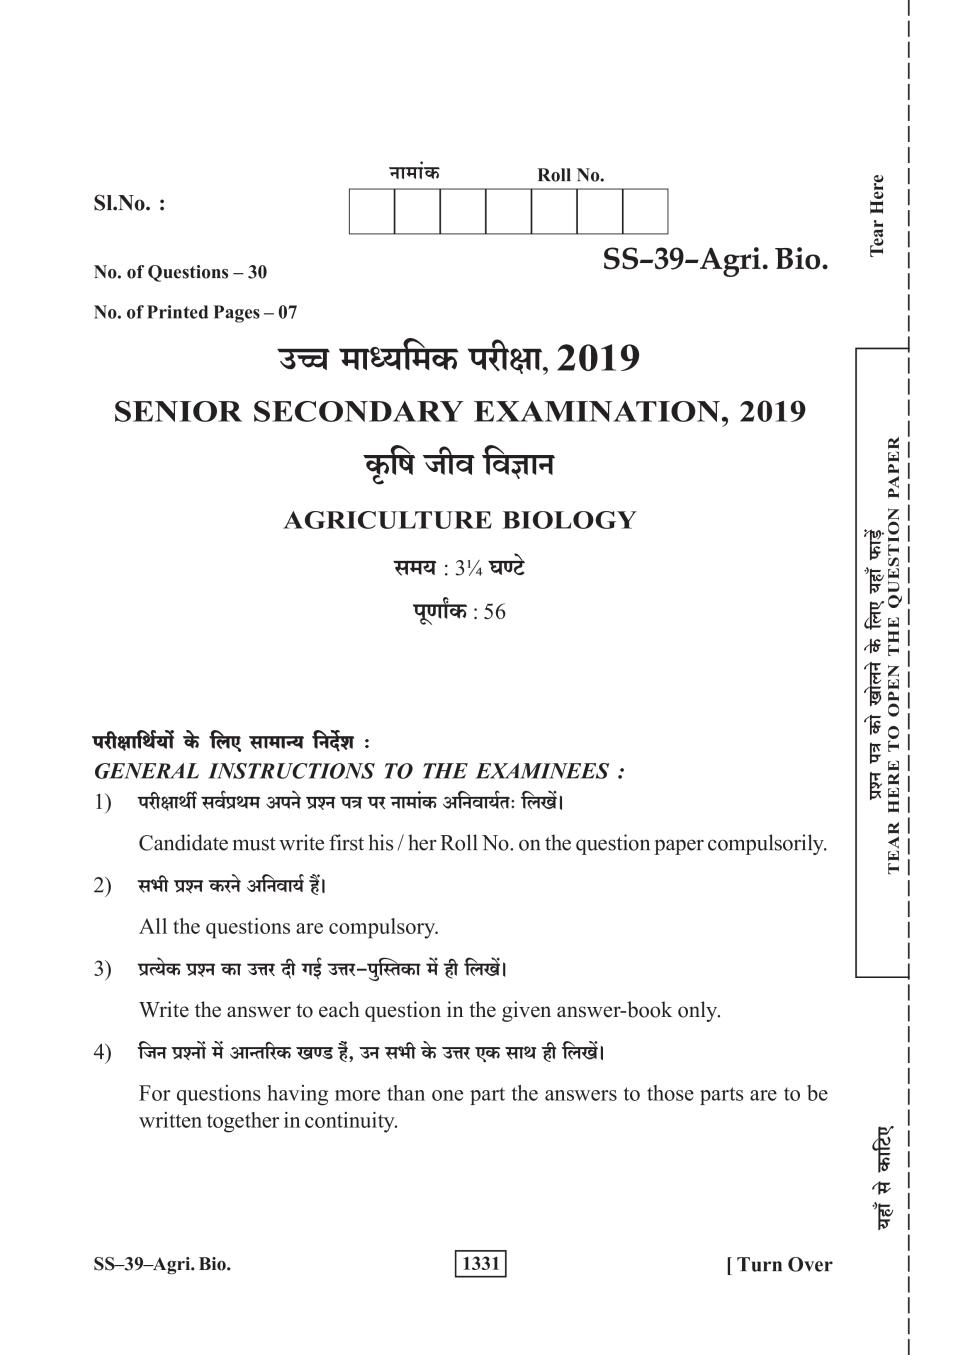 Rajasthan Board Sr. Secondary Agriculture Biology Question Paper